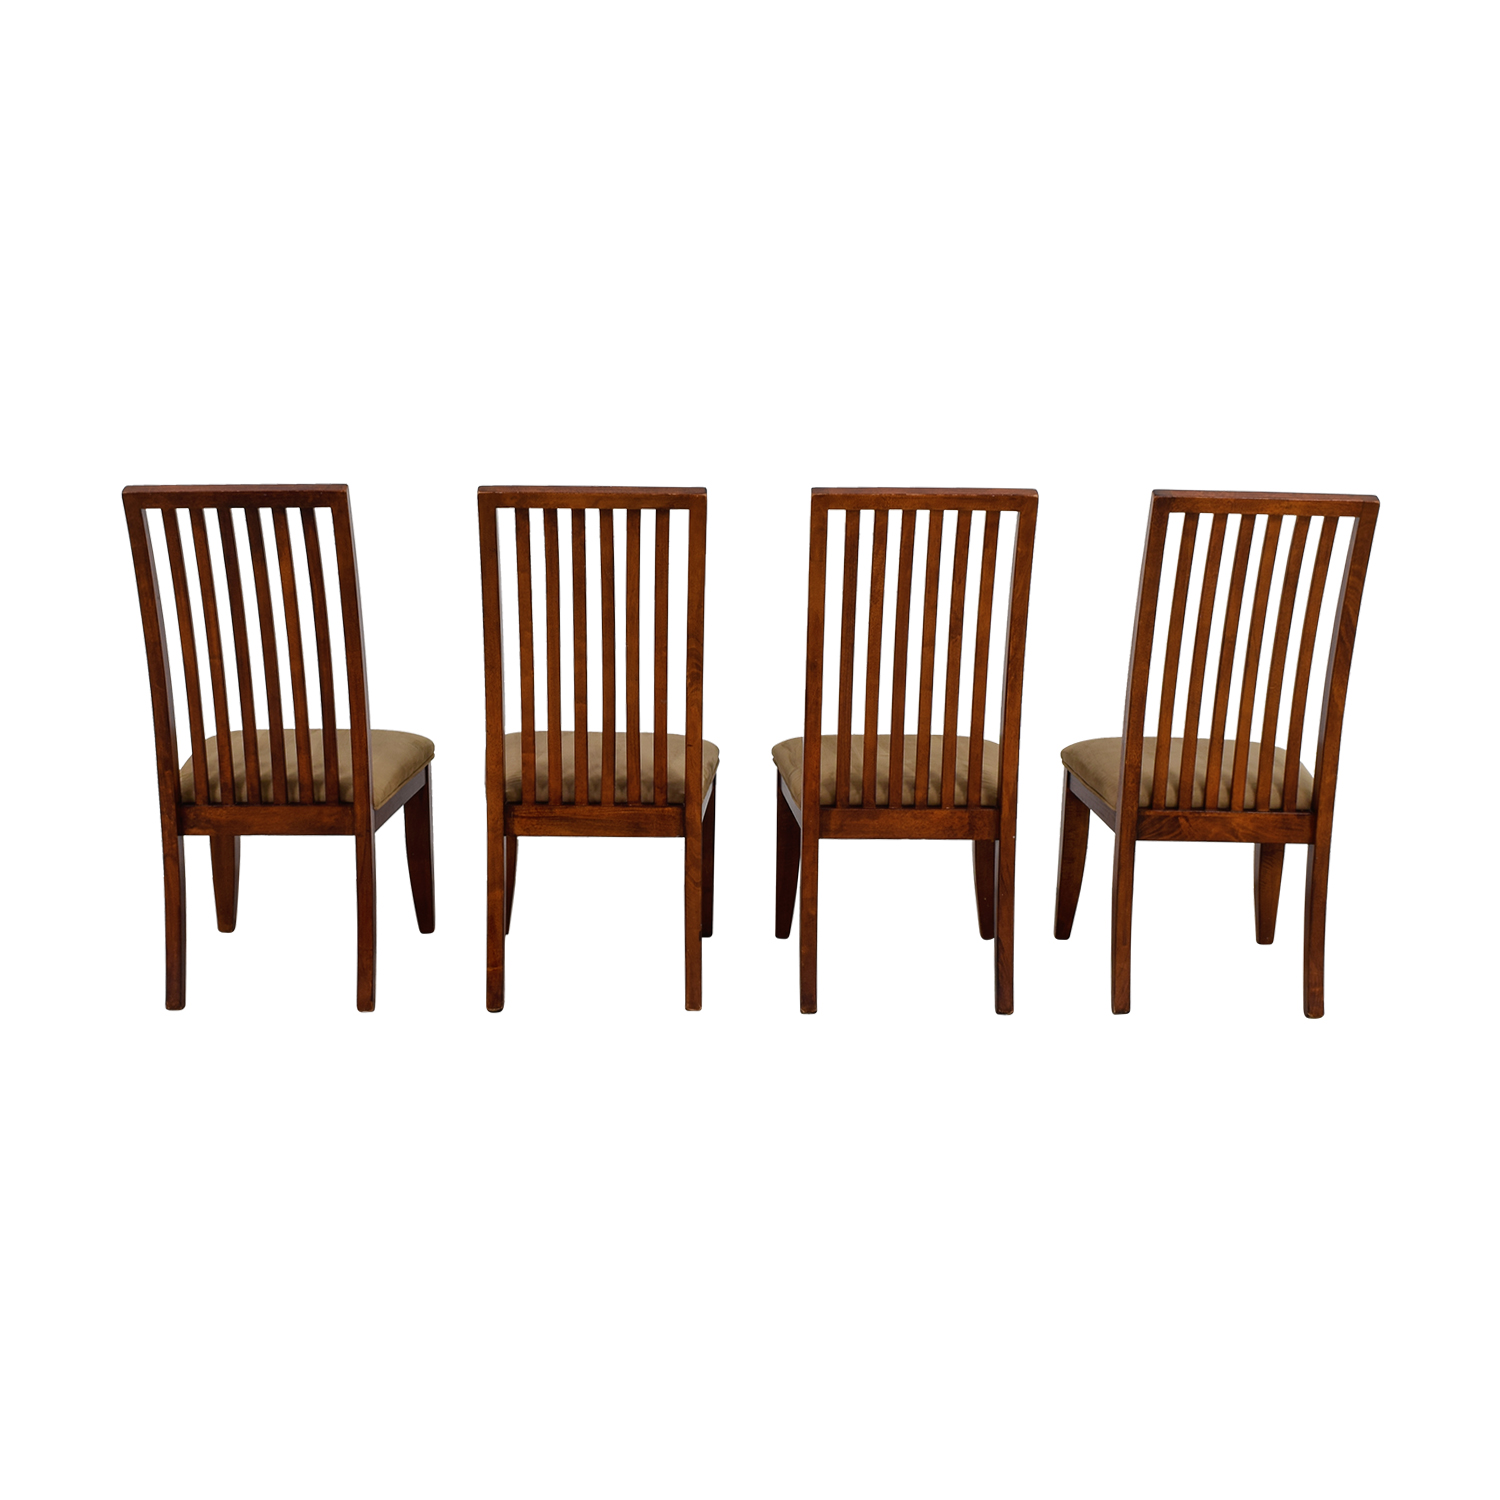 Macys Macys Tan Upholstered Dining Chairs dimensions